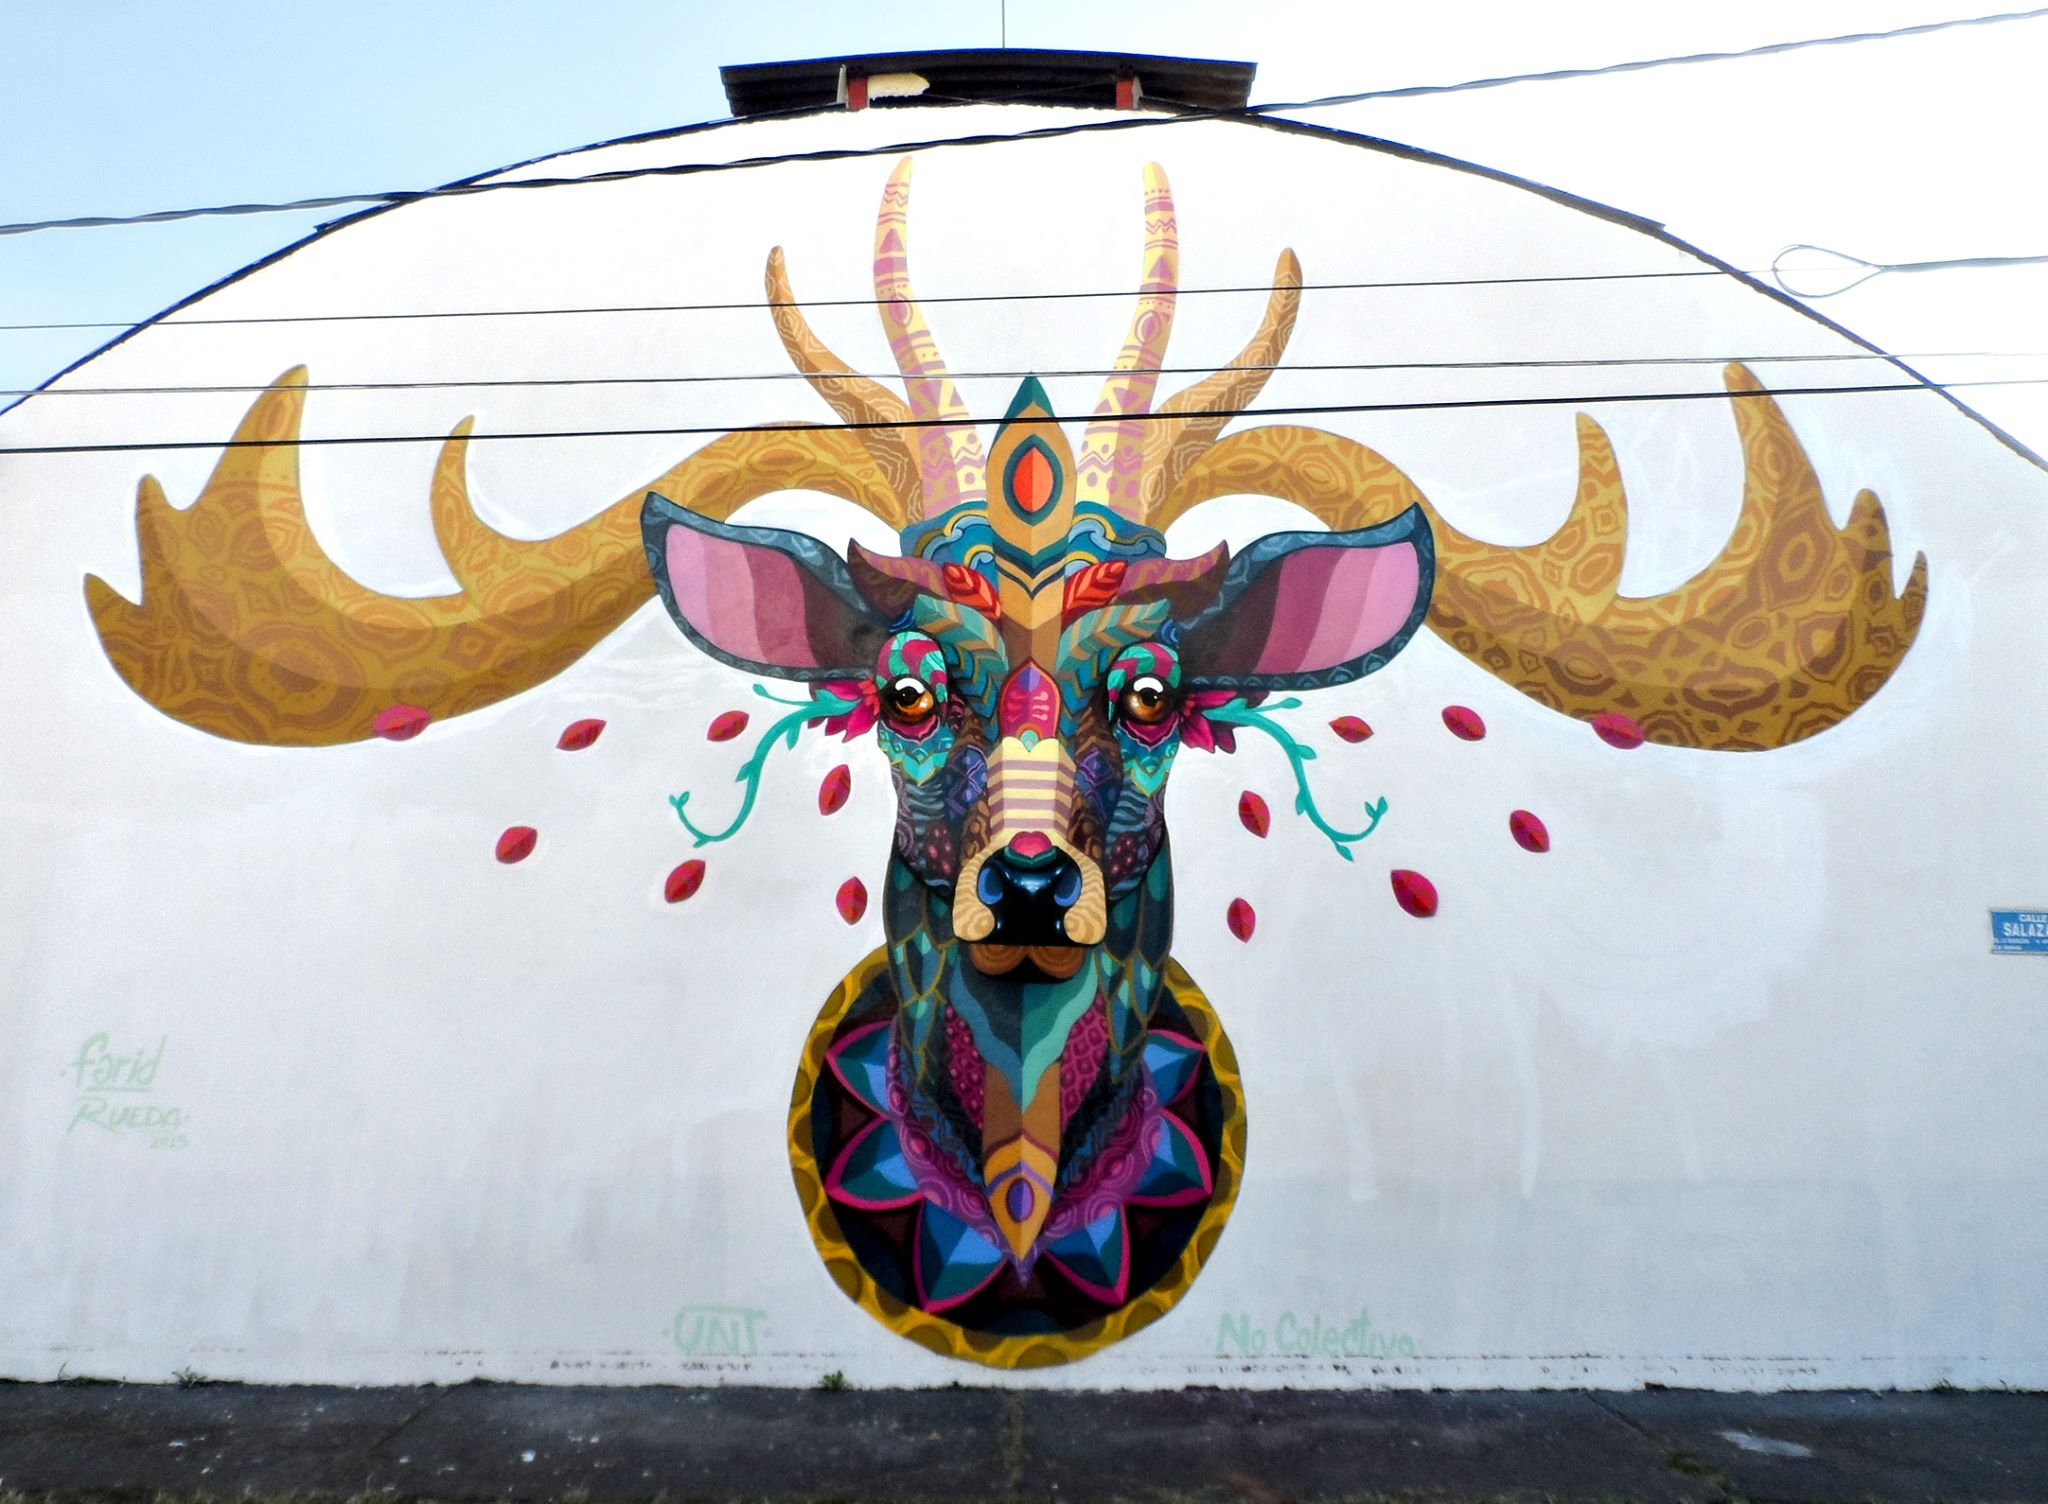 Farid rueda newest mural in uruapan mexico for Arte mural en mexico